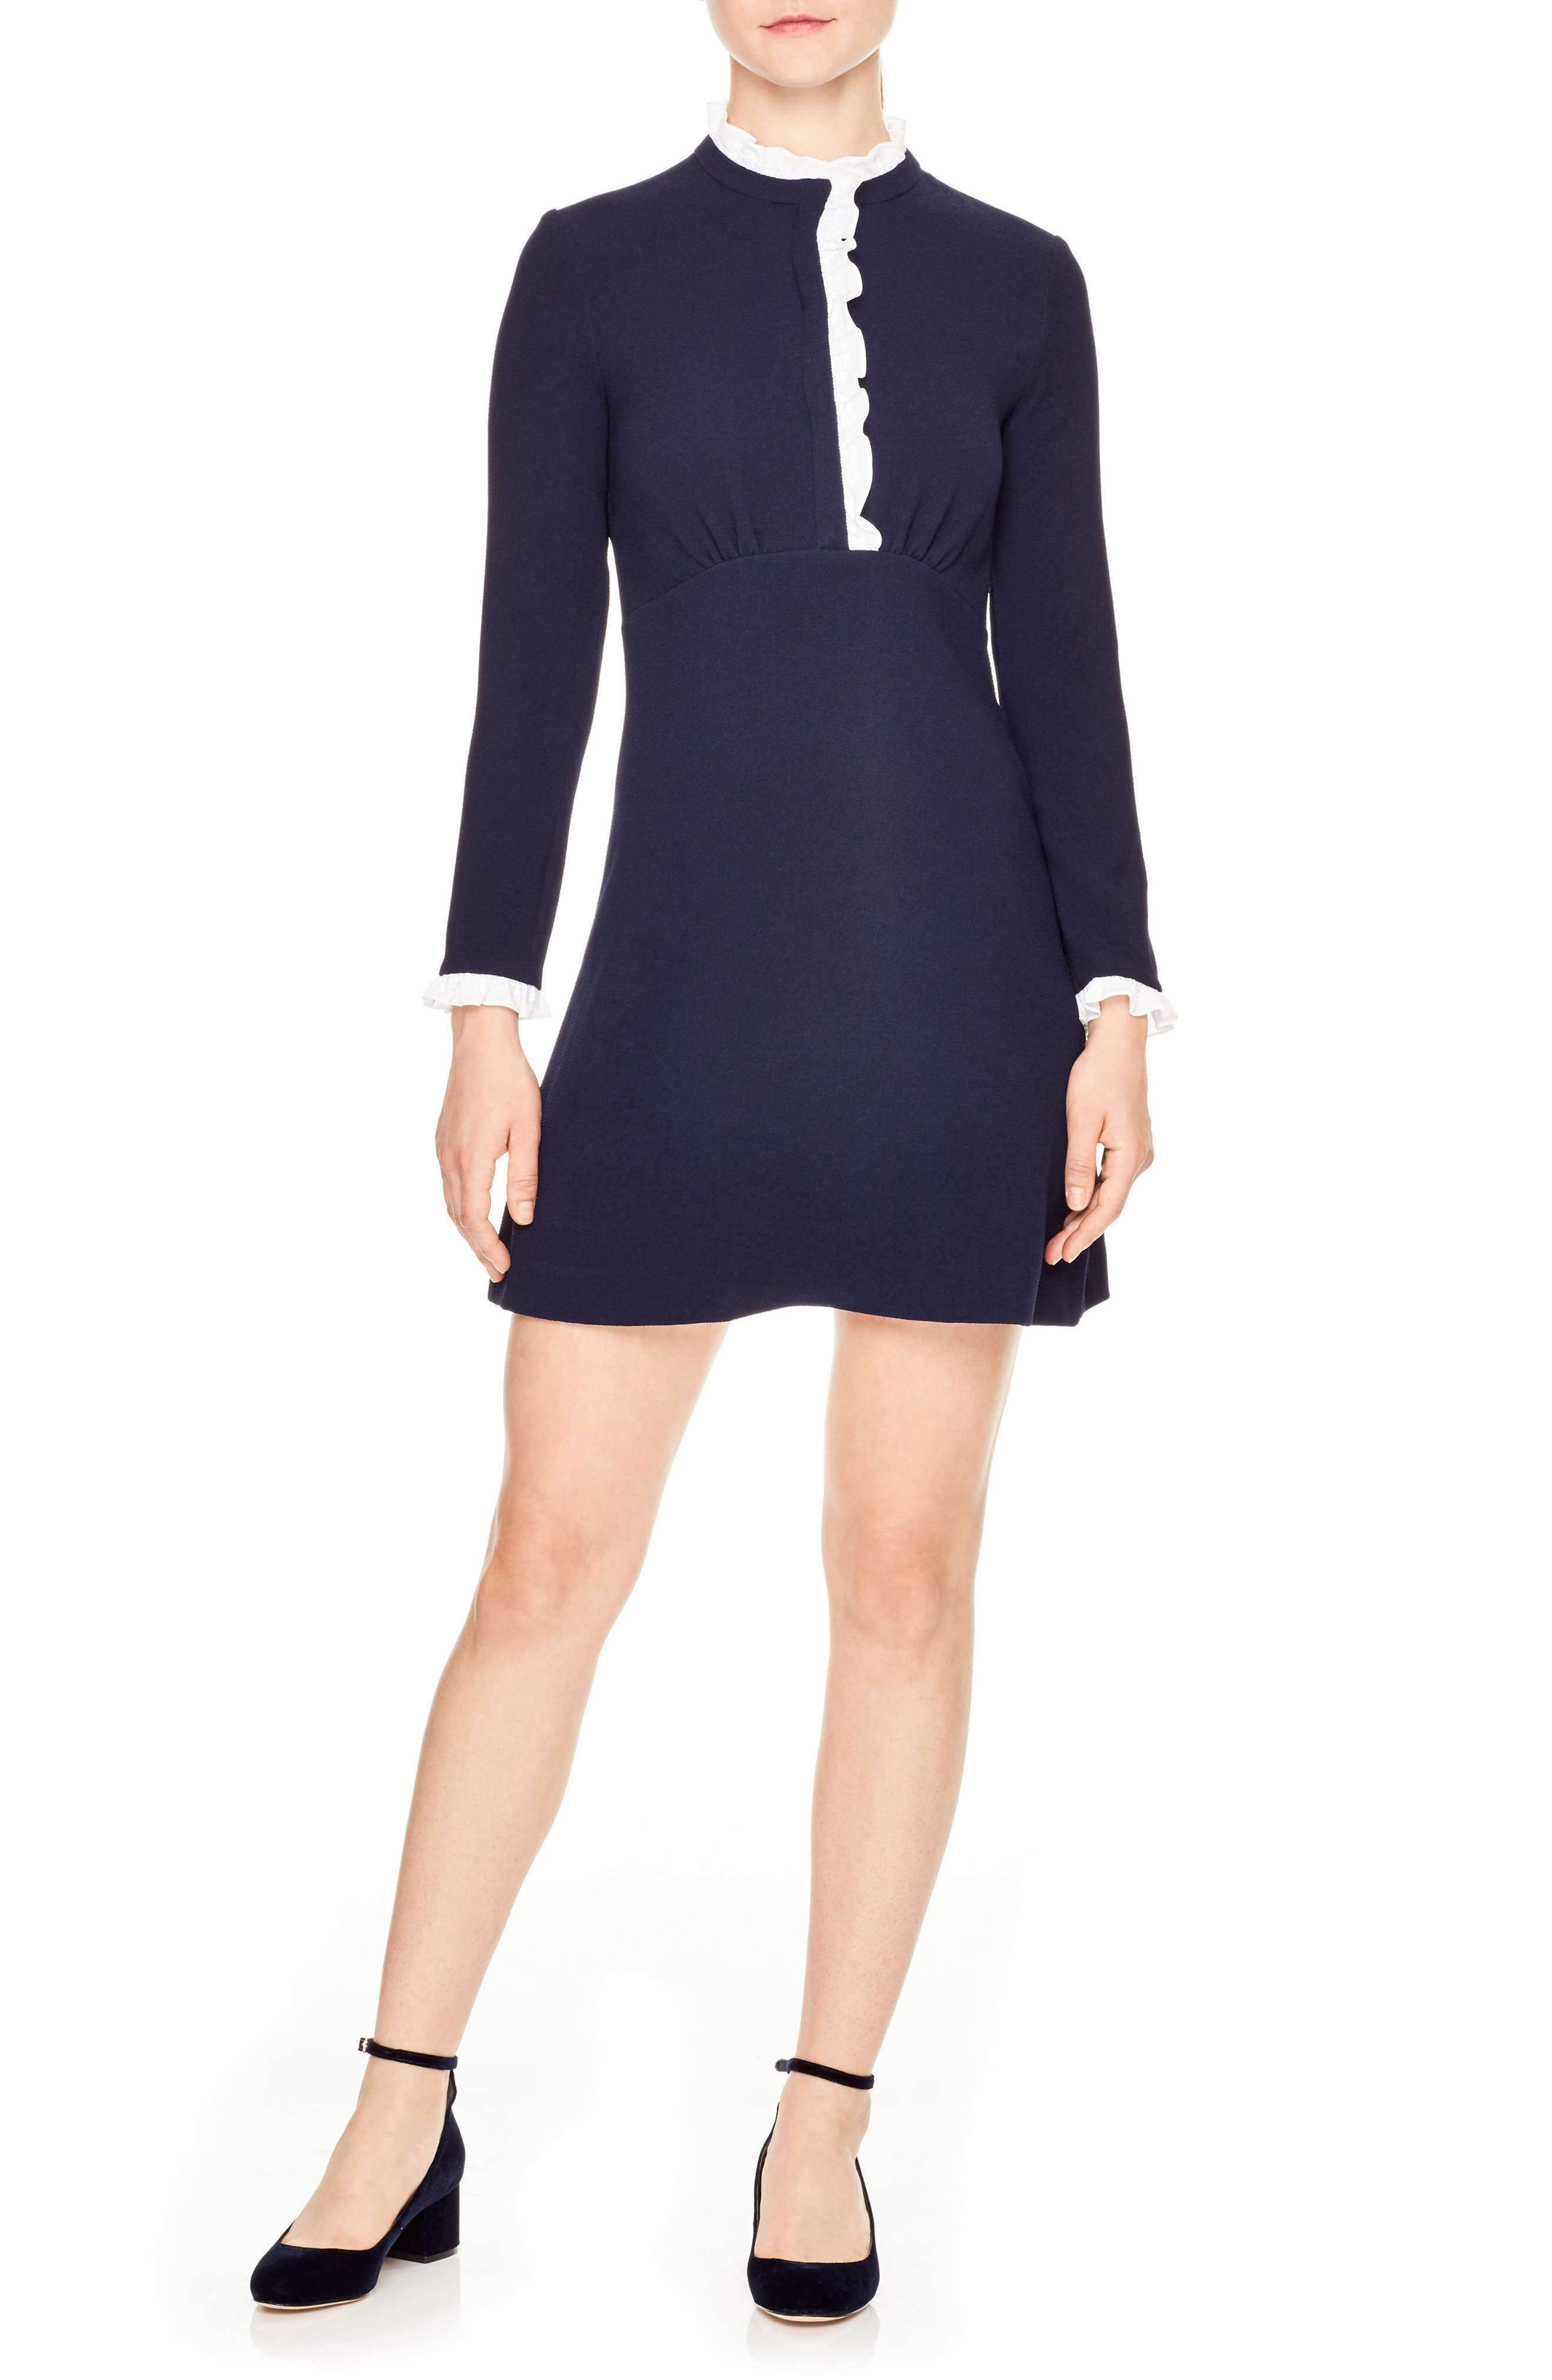 Natalia Long Sleeve Dress,                             Main thumbnail 1, color,                             401